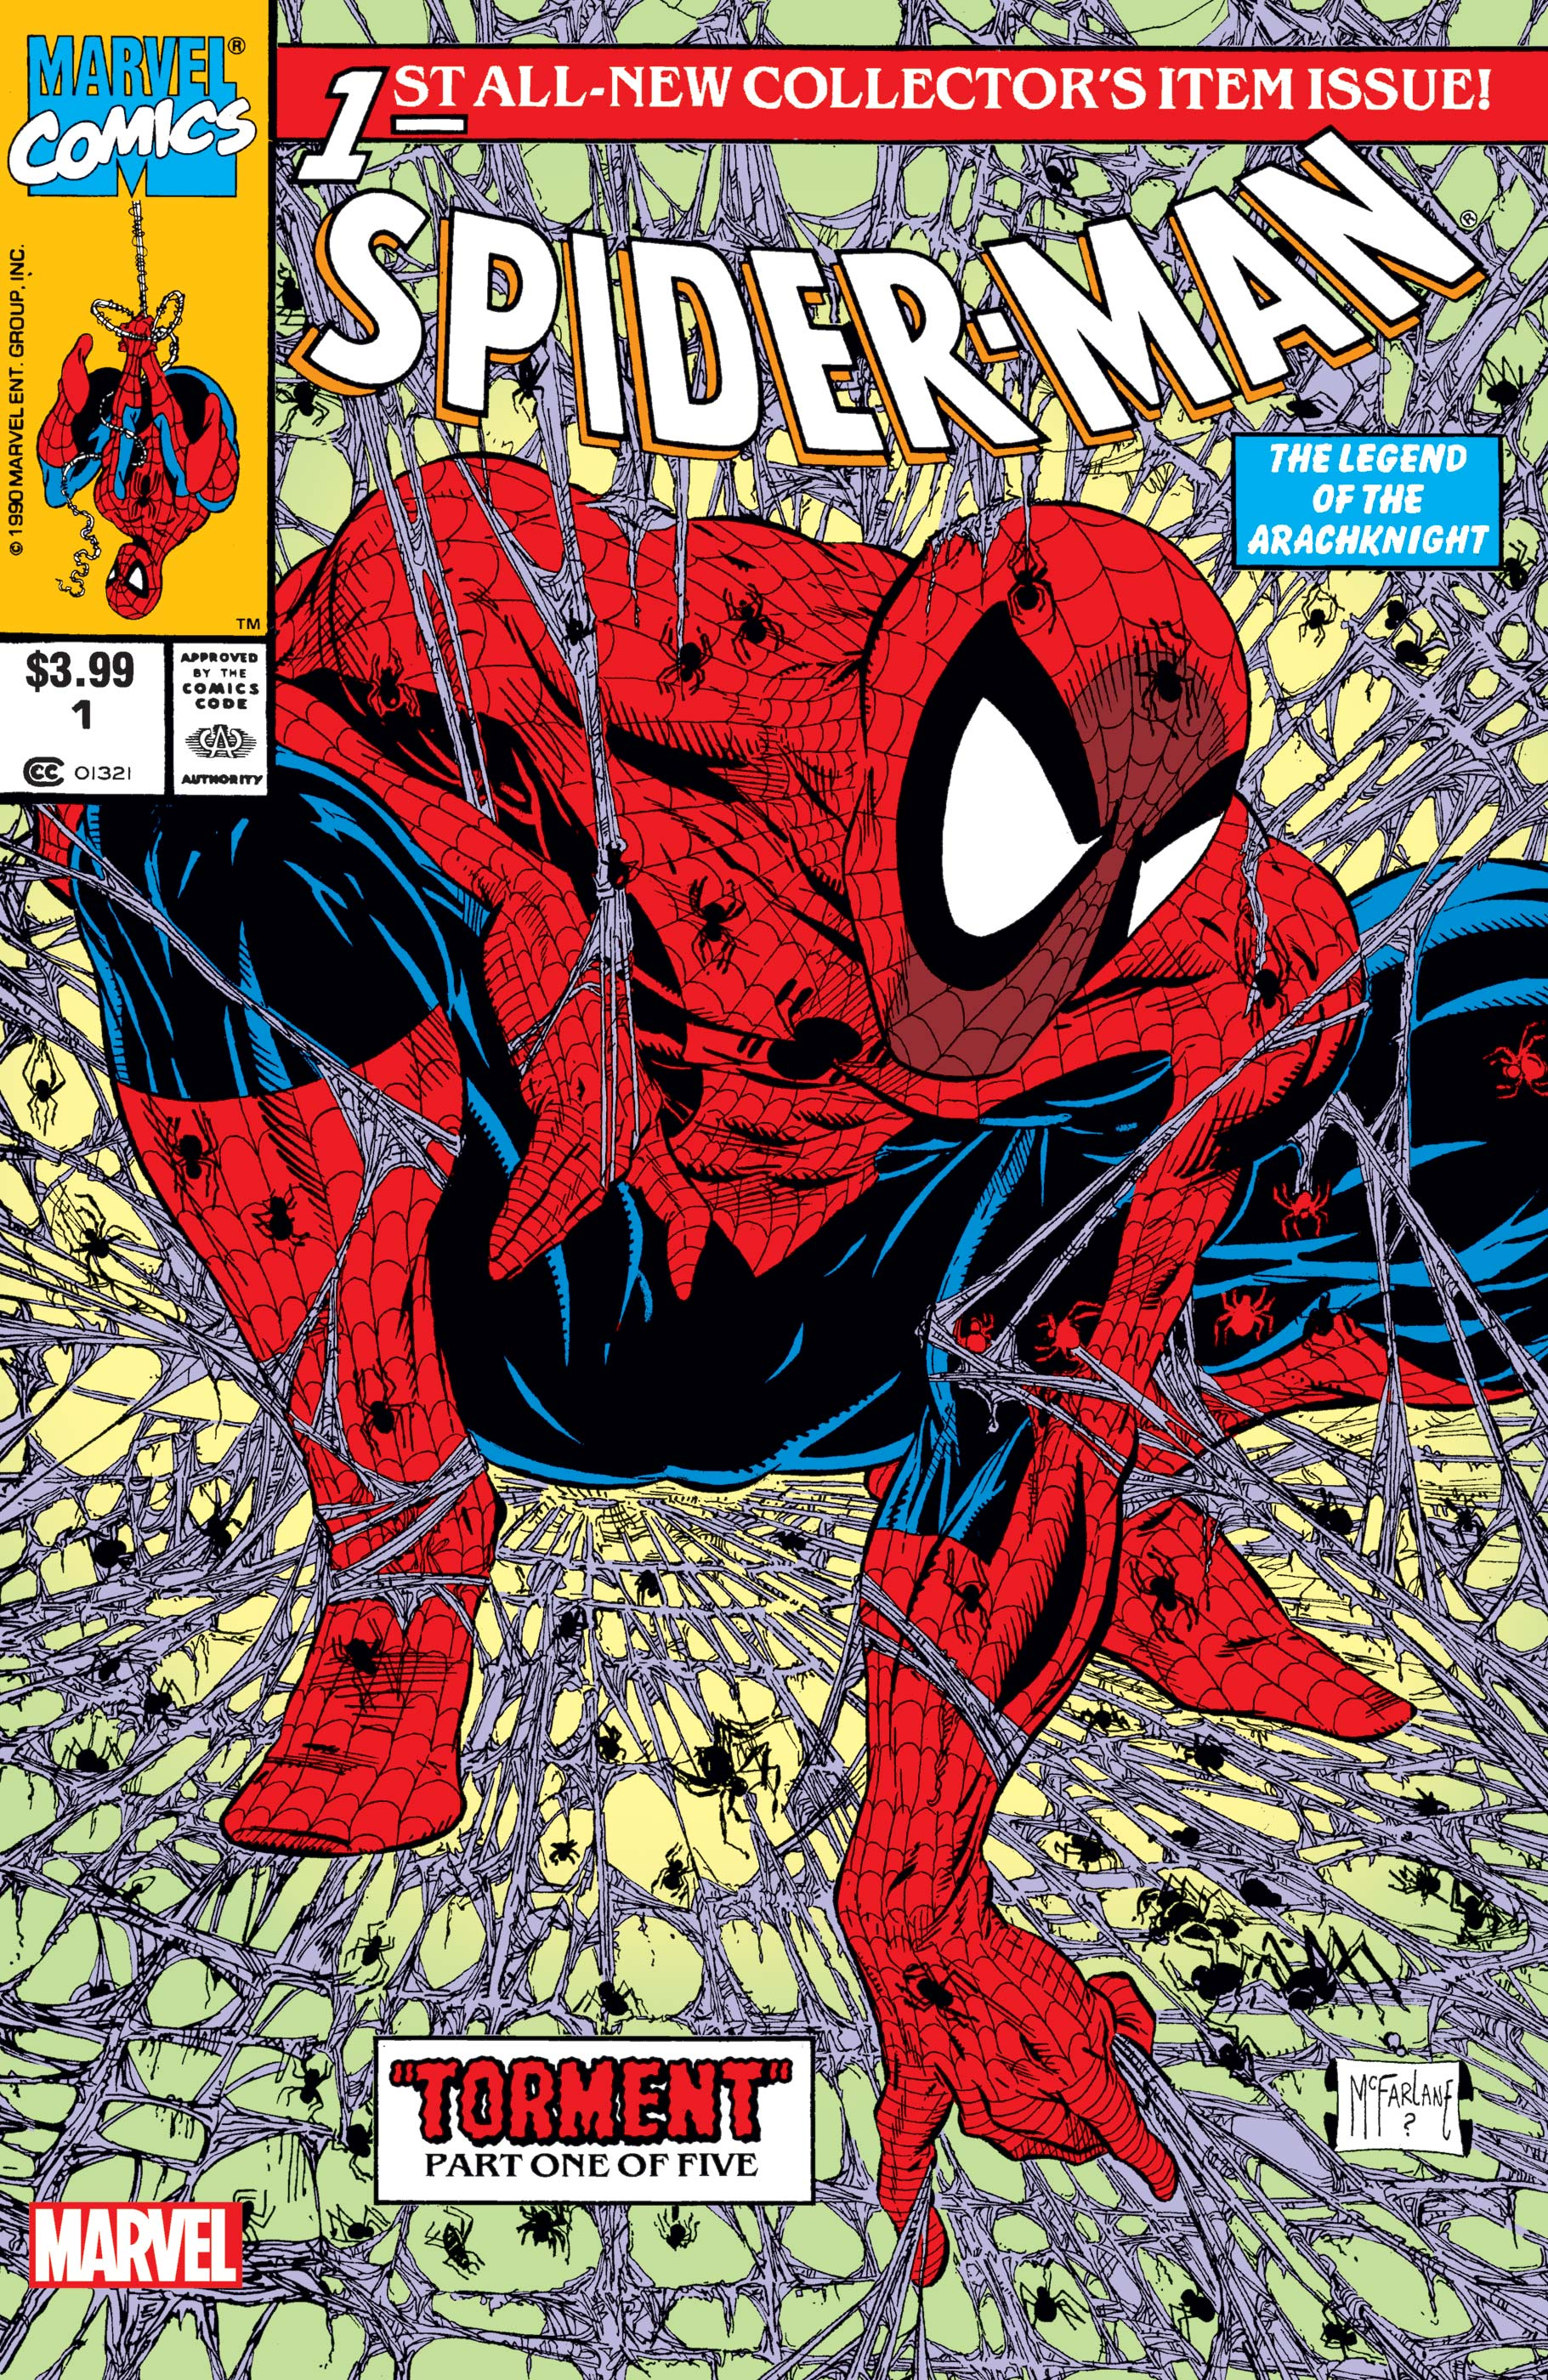 SPIDER-MAN 1 FACSIMILE EDITION (2020) #1